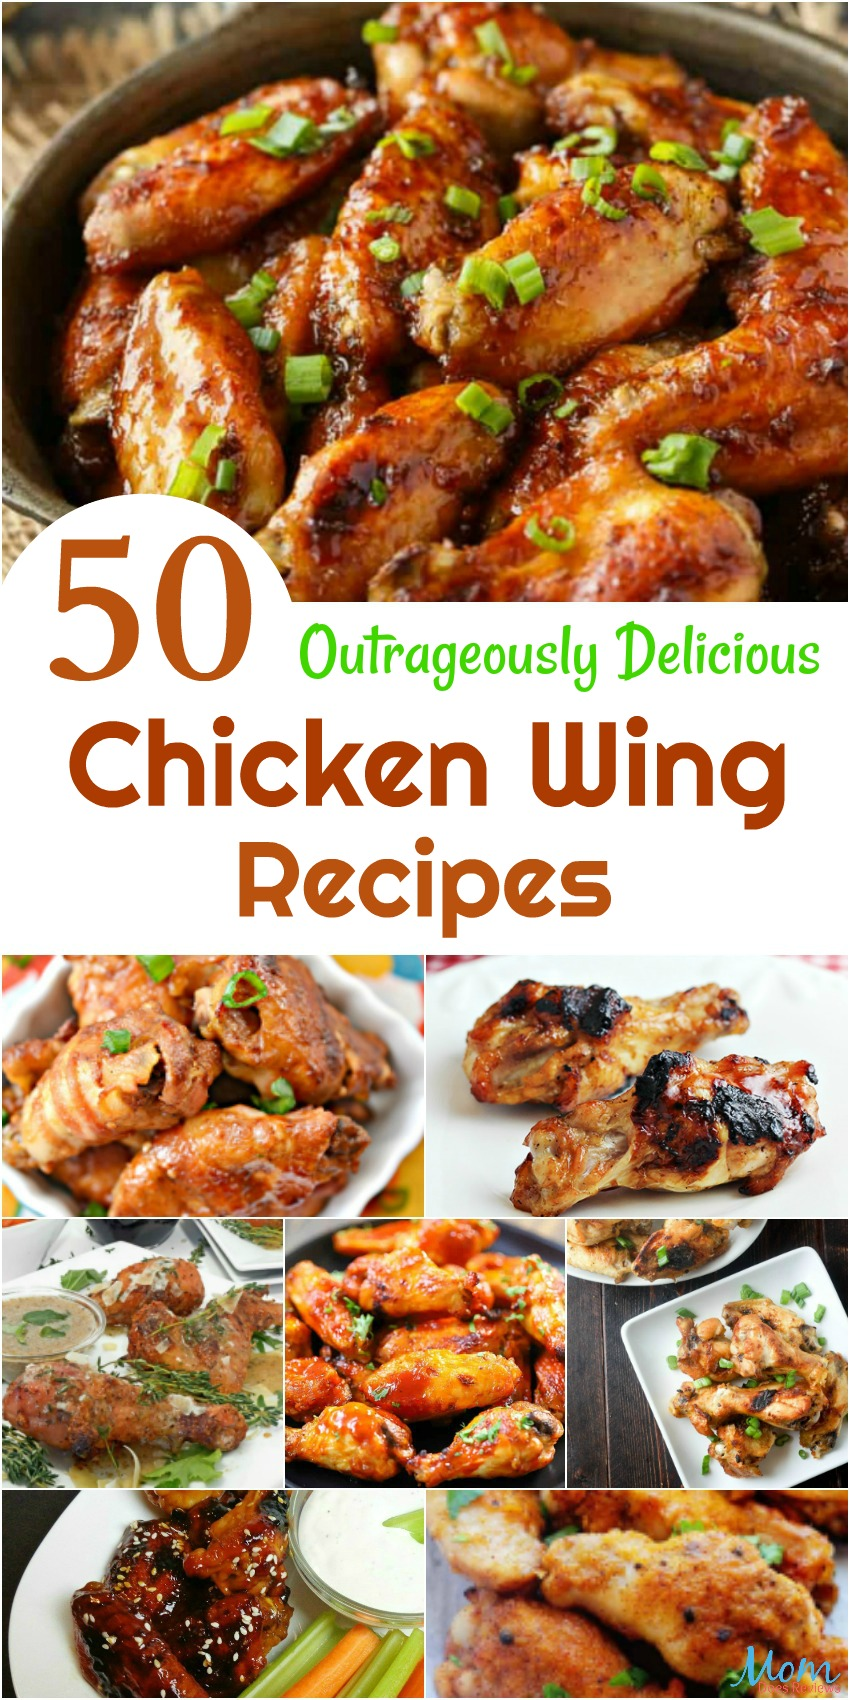 50 Outrageously Delicious Chicken Wing Recipes You Have to Add to the Menu #recipes #chicken #chickenwings #getinmybelly